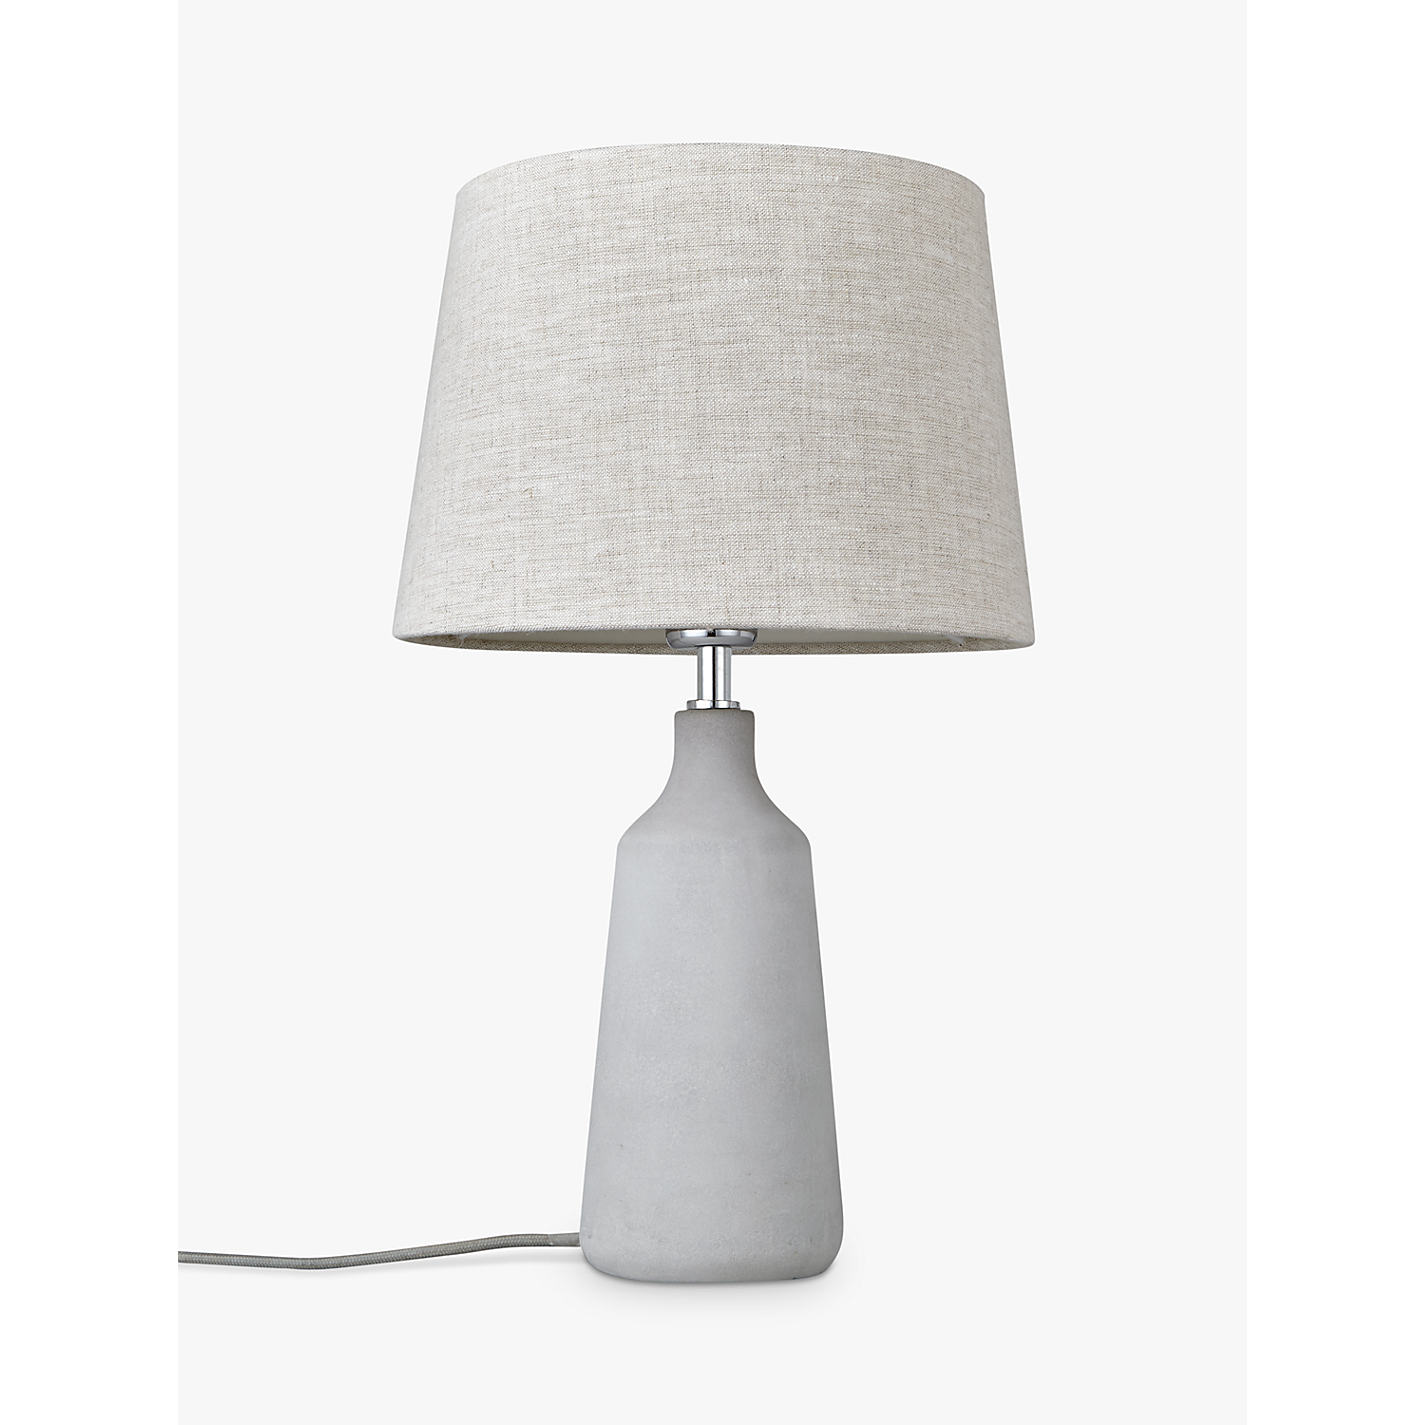 ... Buy John Lewis Croft Collection Linney Concrete Table Lamp Online at  johnlewis.com ...